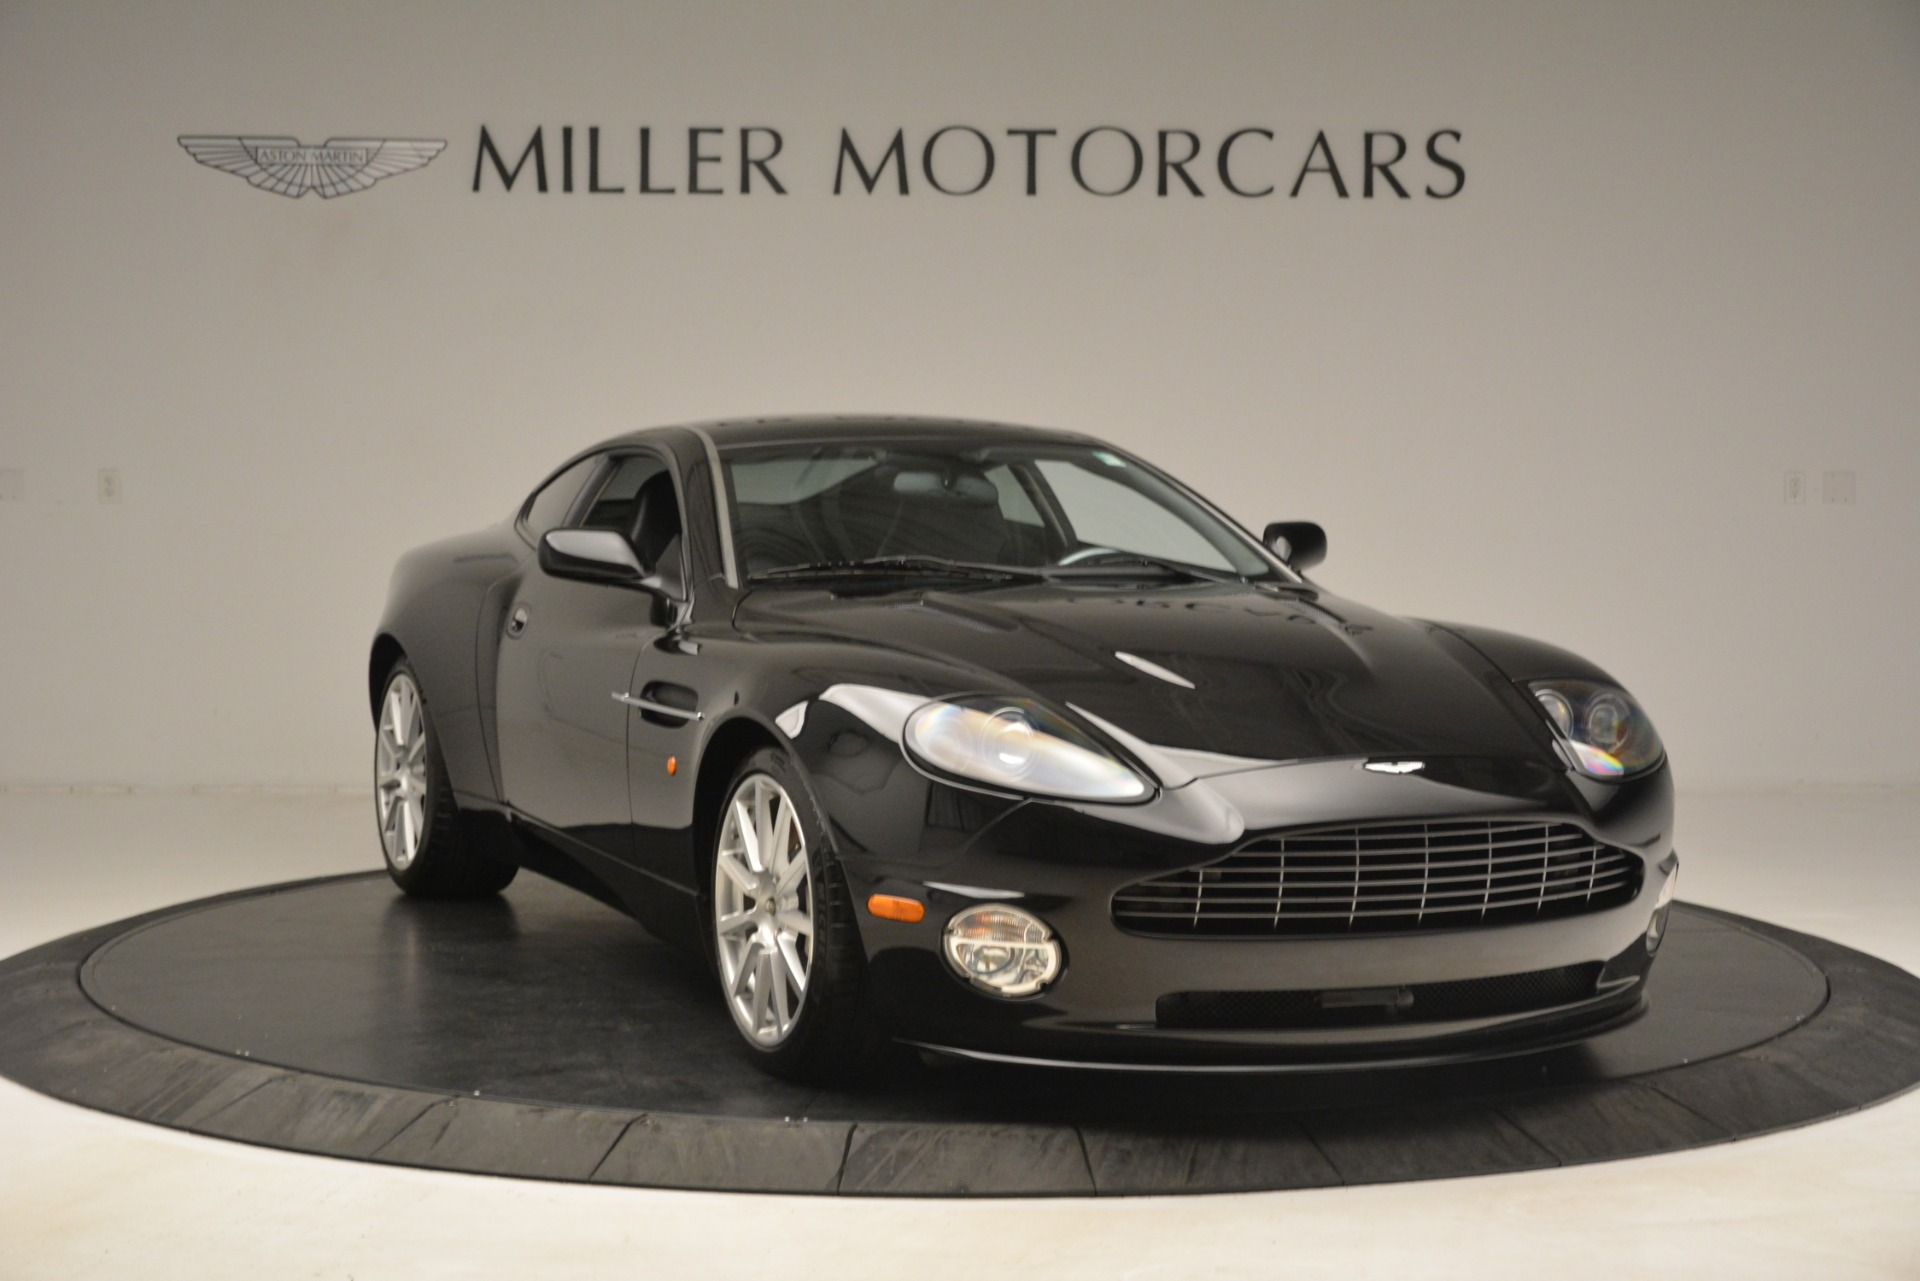 Used 2005 Aston Martin V12 Vanquish S Coupe For Sale In Greenwich, CT 3218_p11